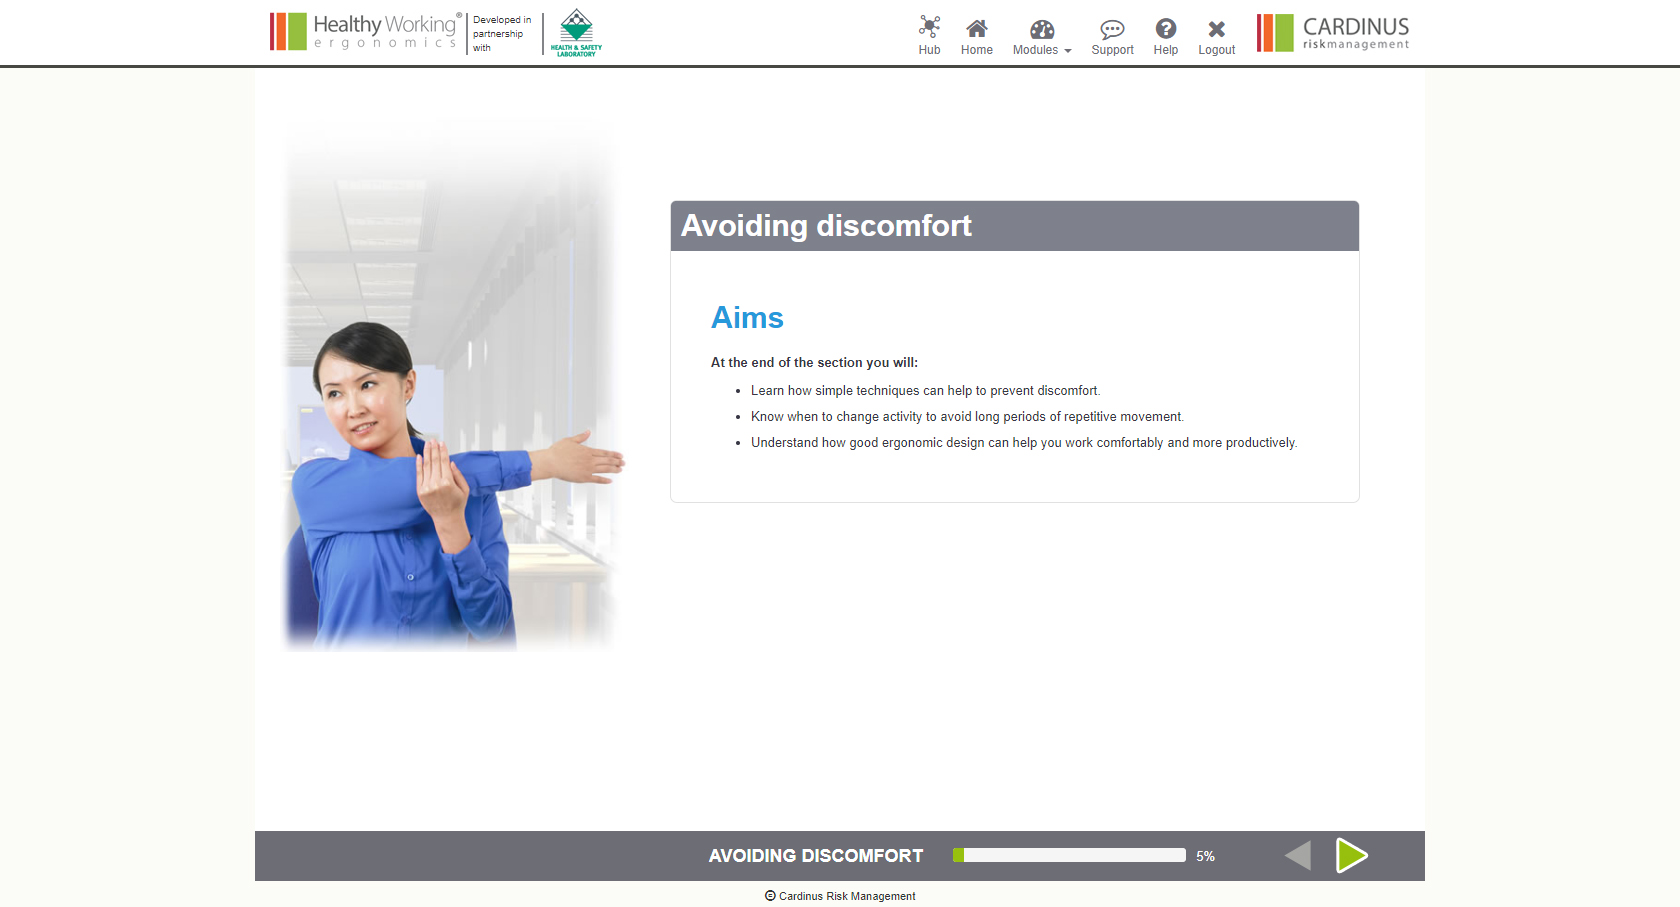 Avoiding Discomfort, Aims | Healthy Working